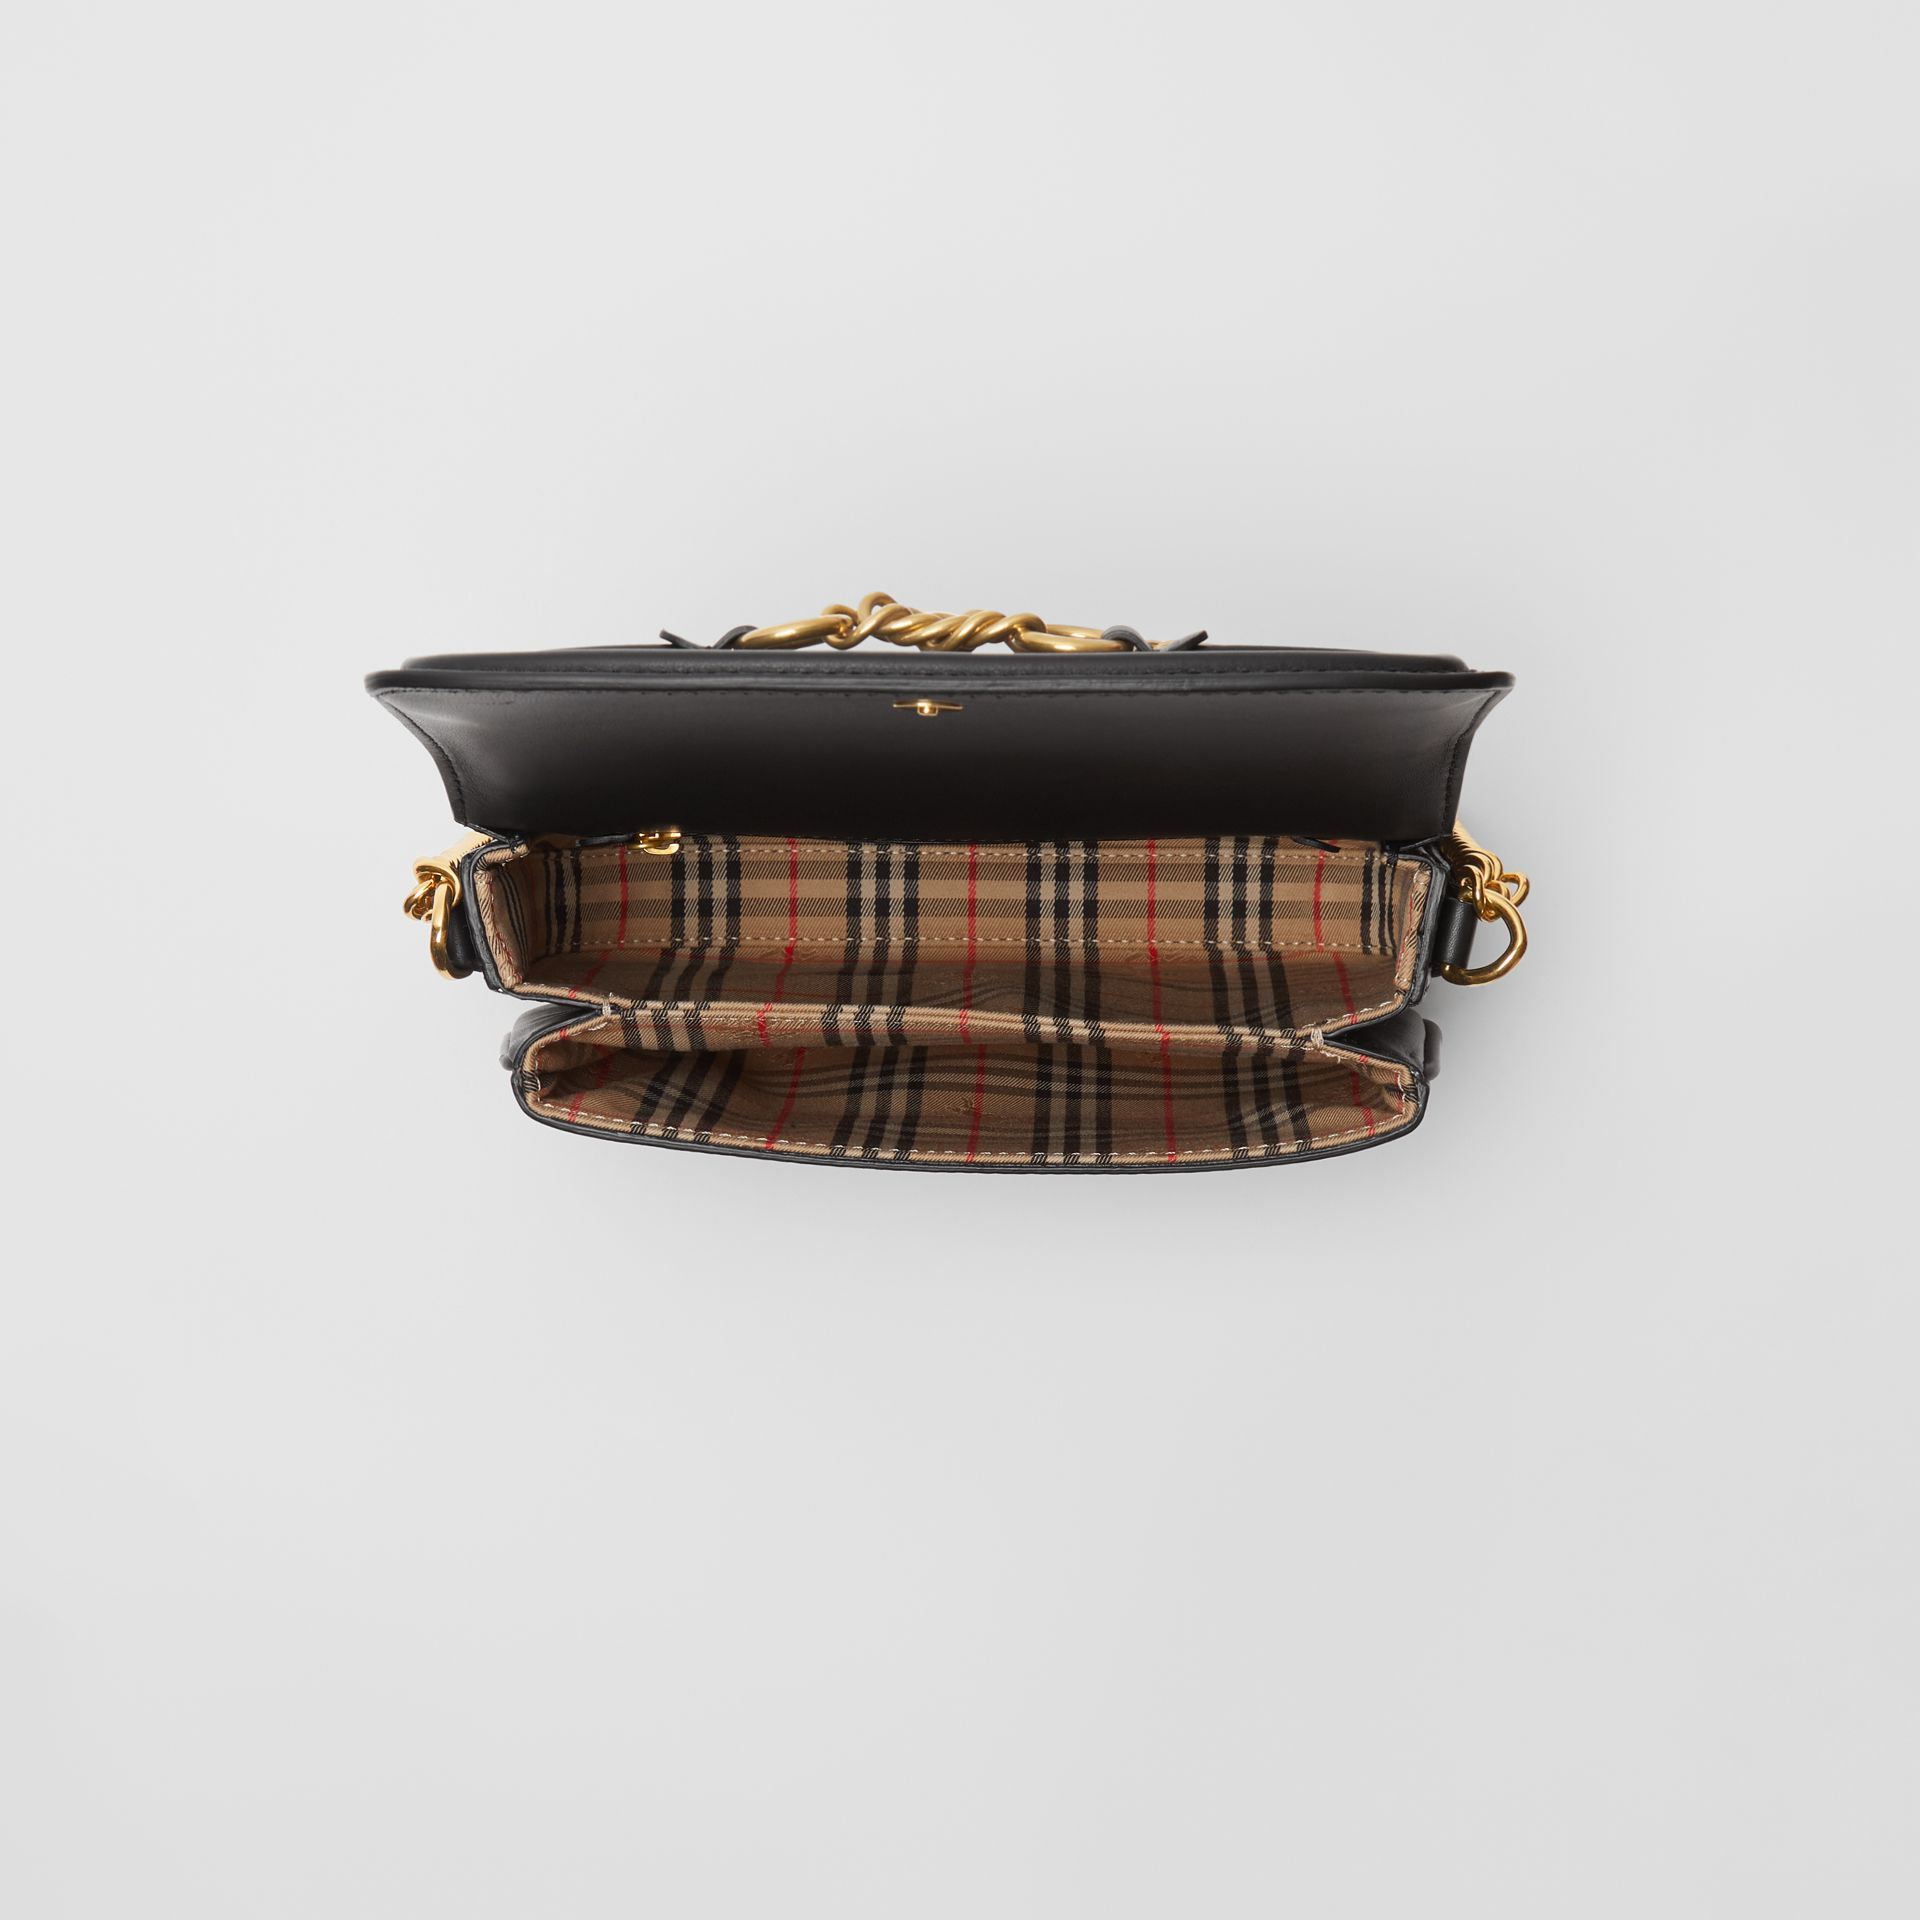 Sac The Link en cuir (Noir) - Femme | Burberry Canada - photo de la galerie 4